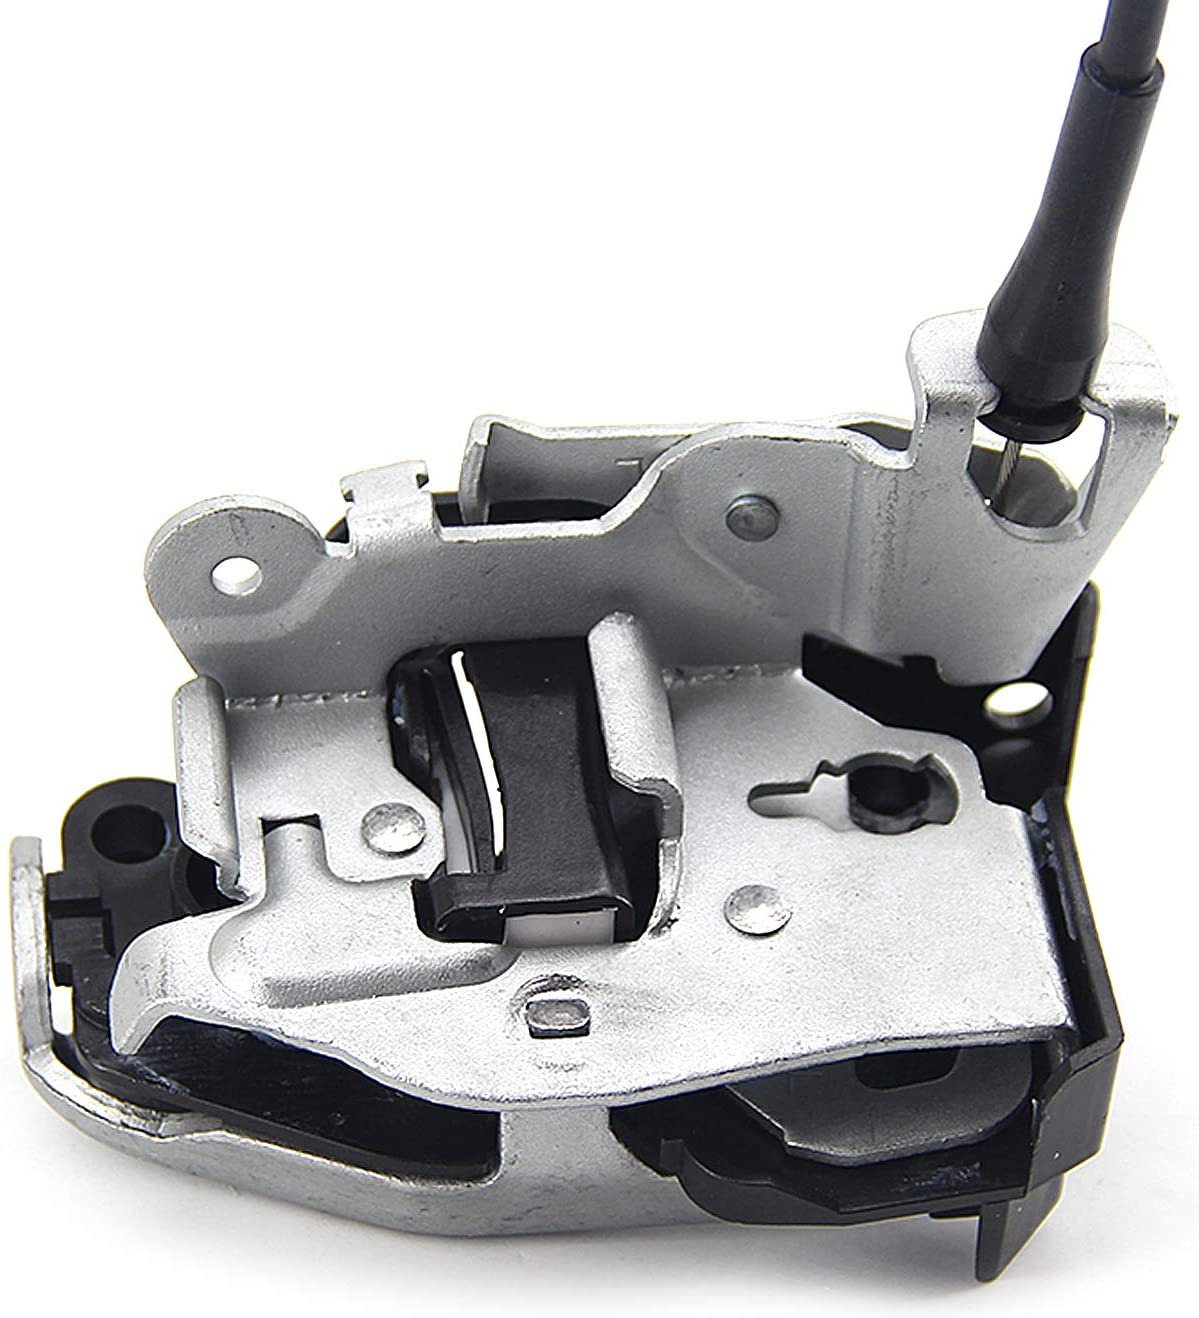 FEXON Door Latch Assembly with Cable Replacement for 2004-2008 Ford F-150 6L3Z-18264A01-B 8L3Z-18264A01-B Rear Left